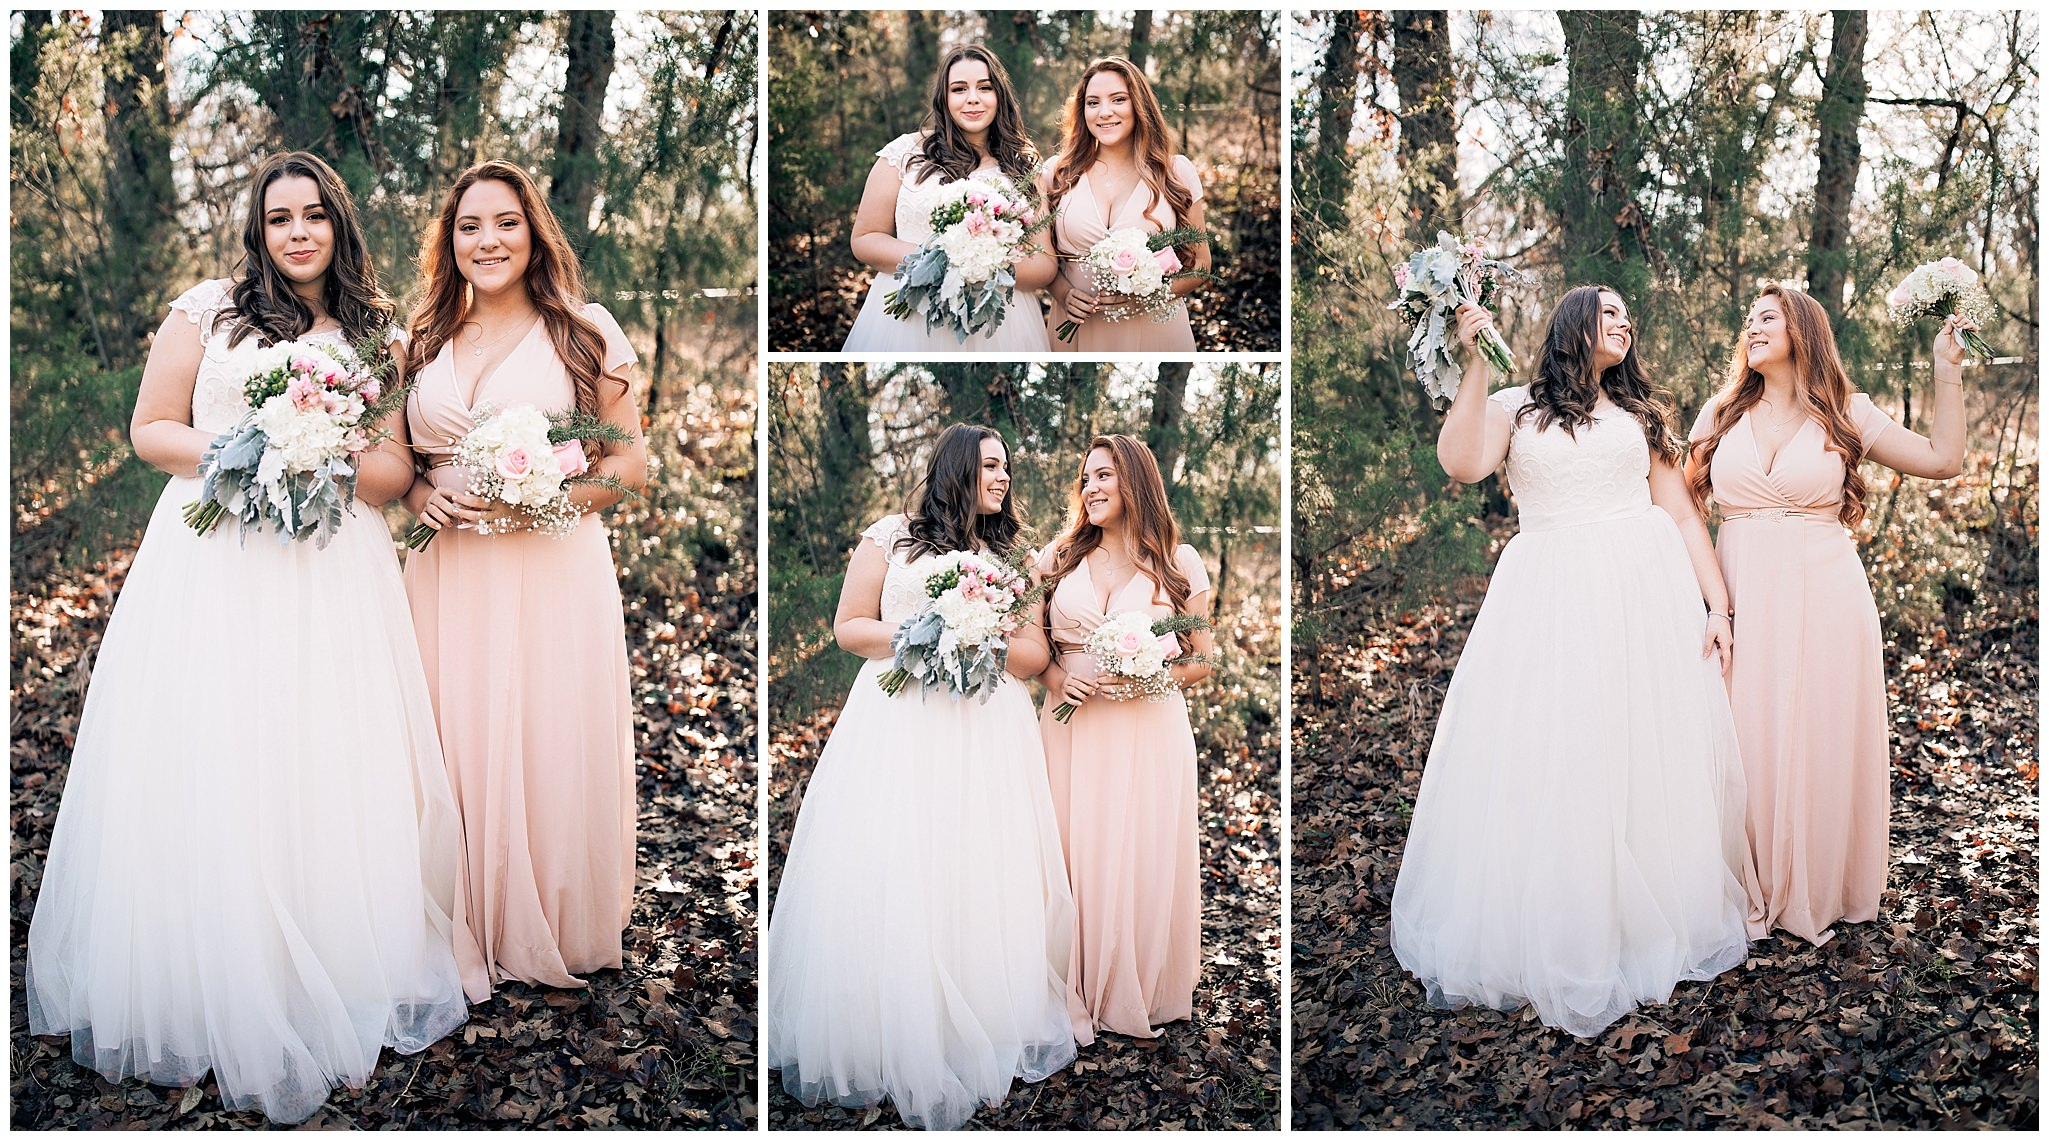 Bride with her bridesmaids who are wearing pink